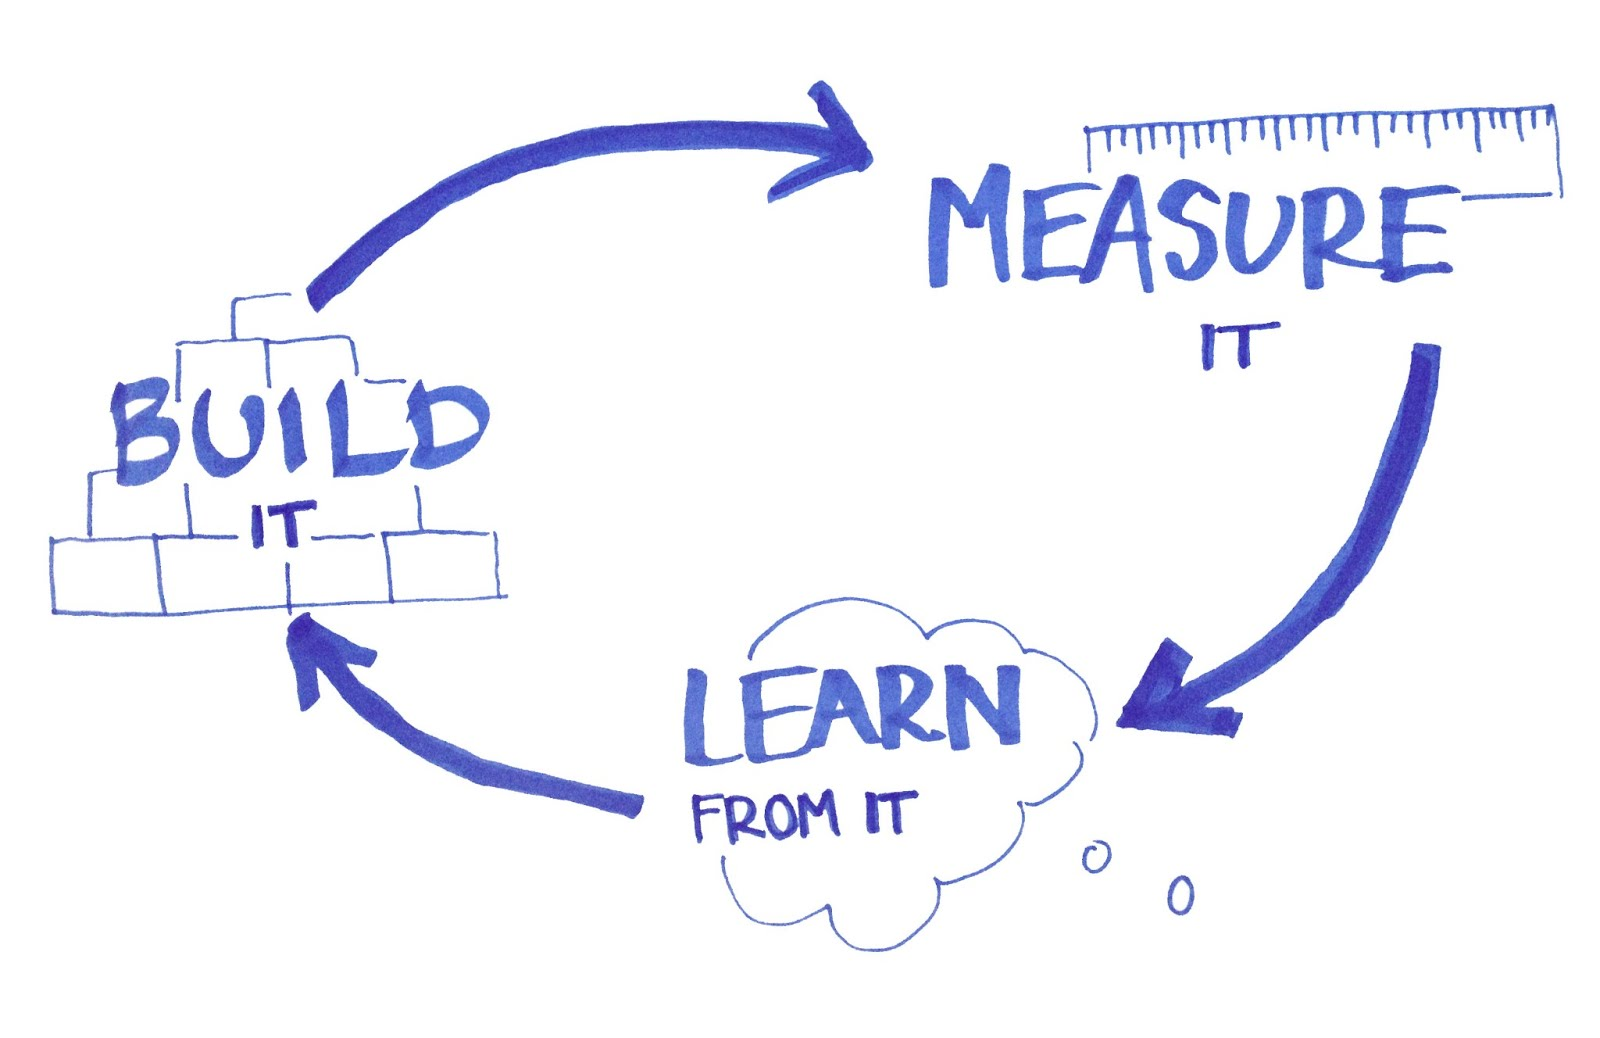 Build, measure, learn